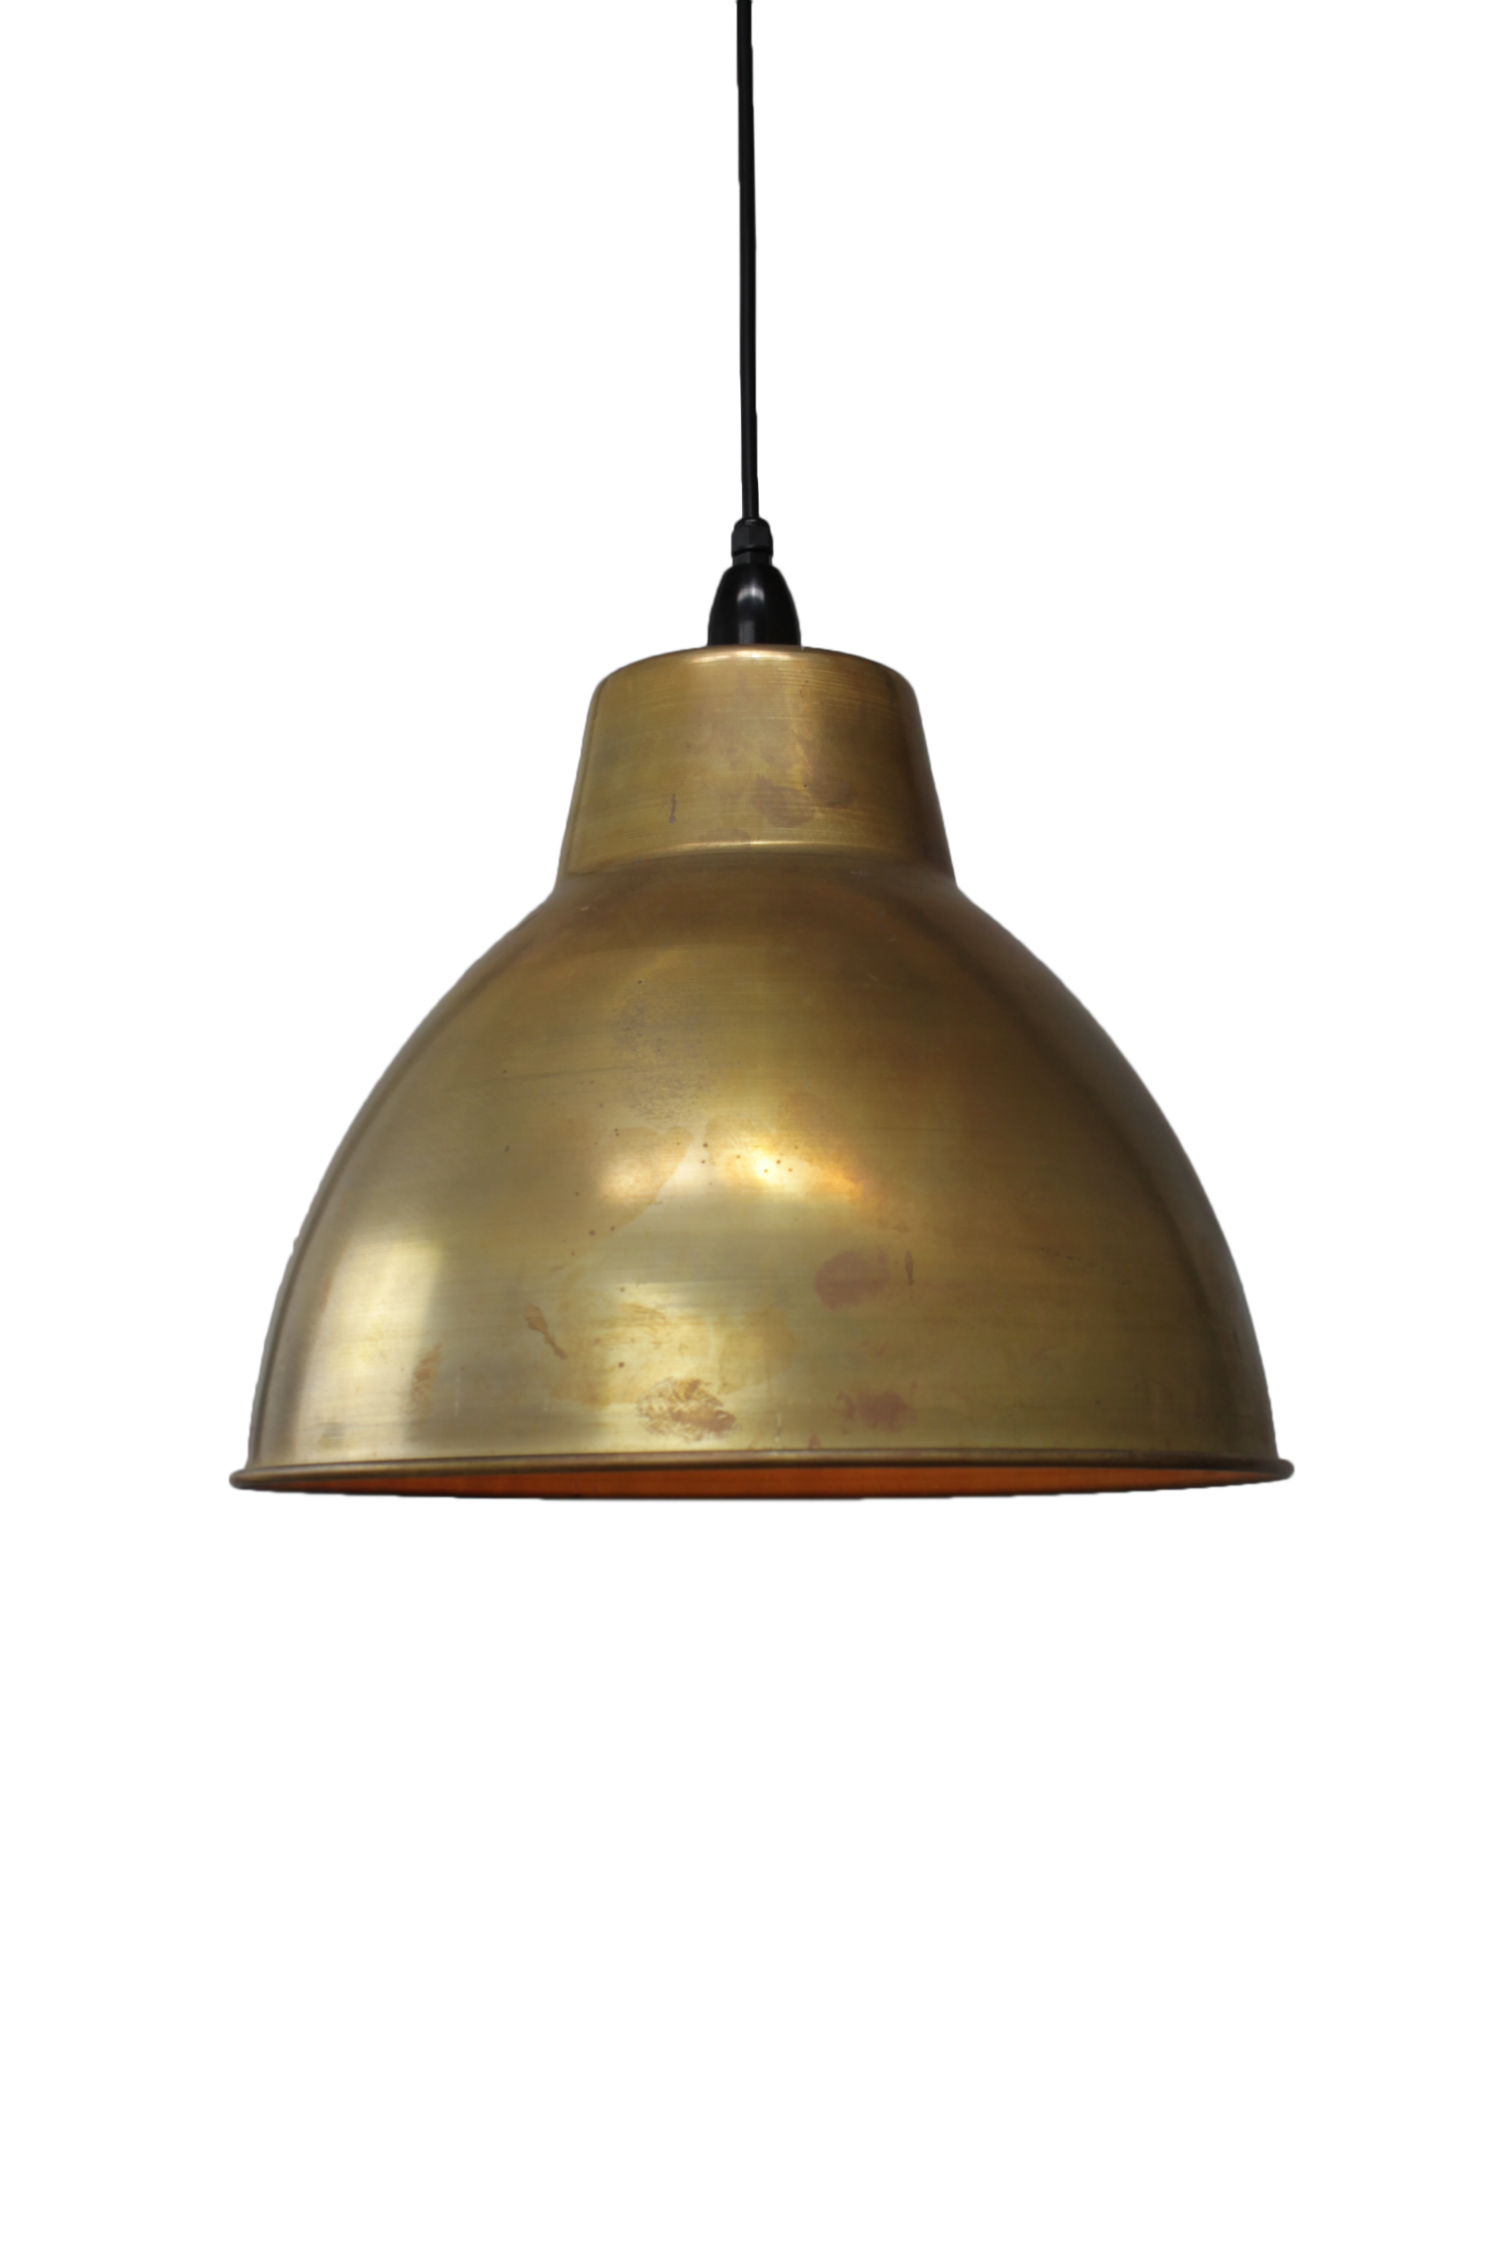 Loft Outdoor Pendant Light by Fat Shack Vintage, a Outdoor Lighting for sale on Style Sourcebook